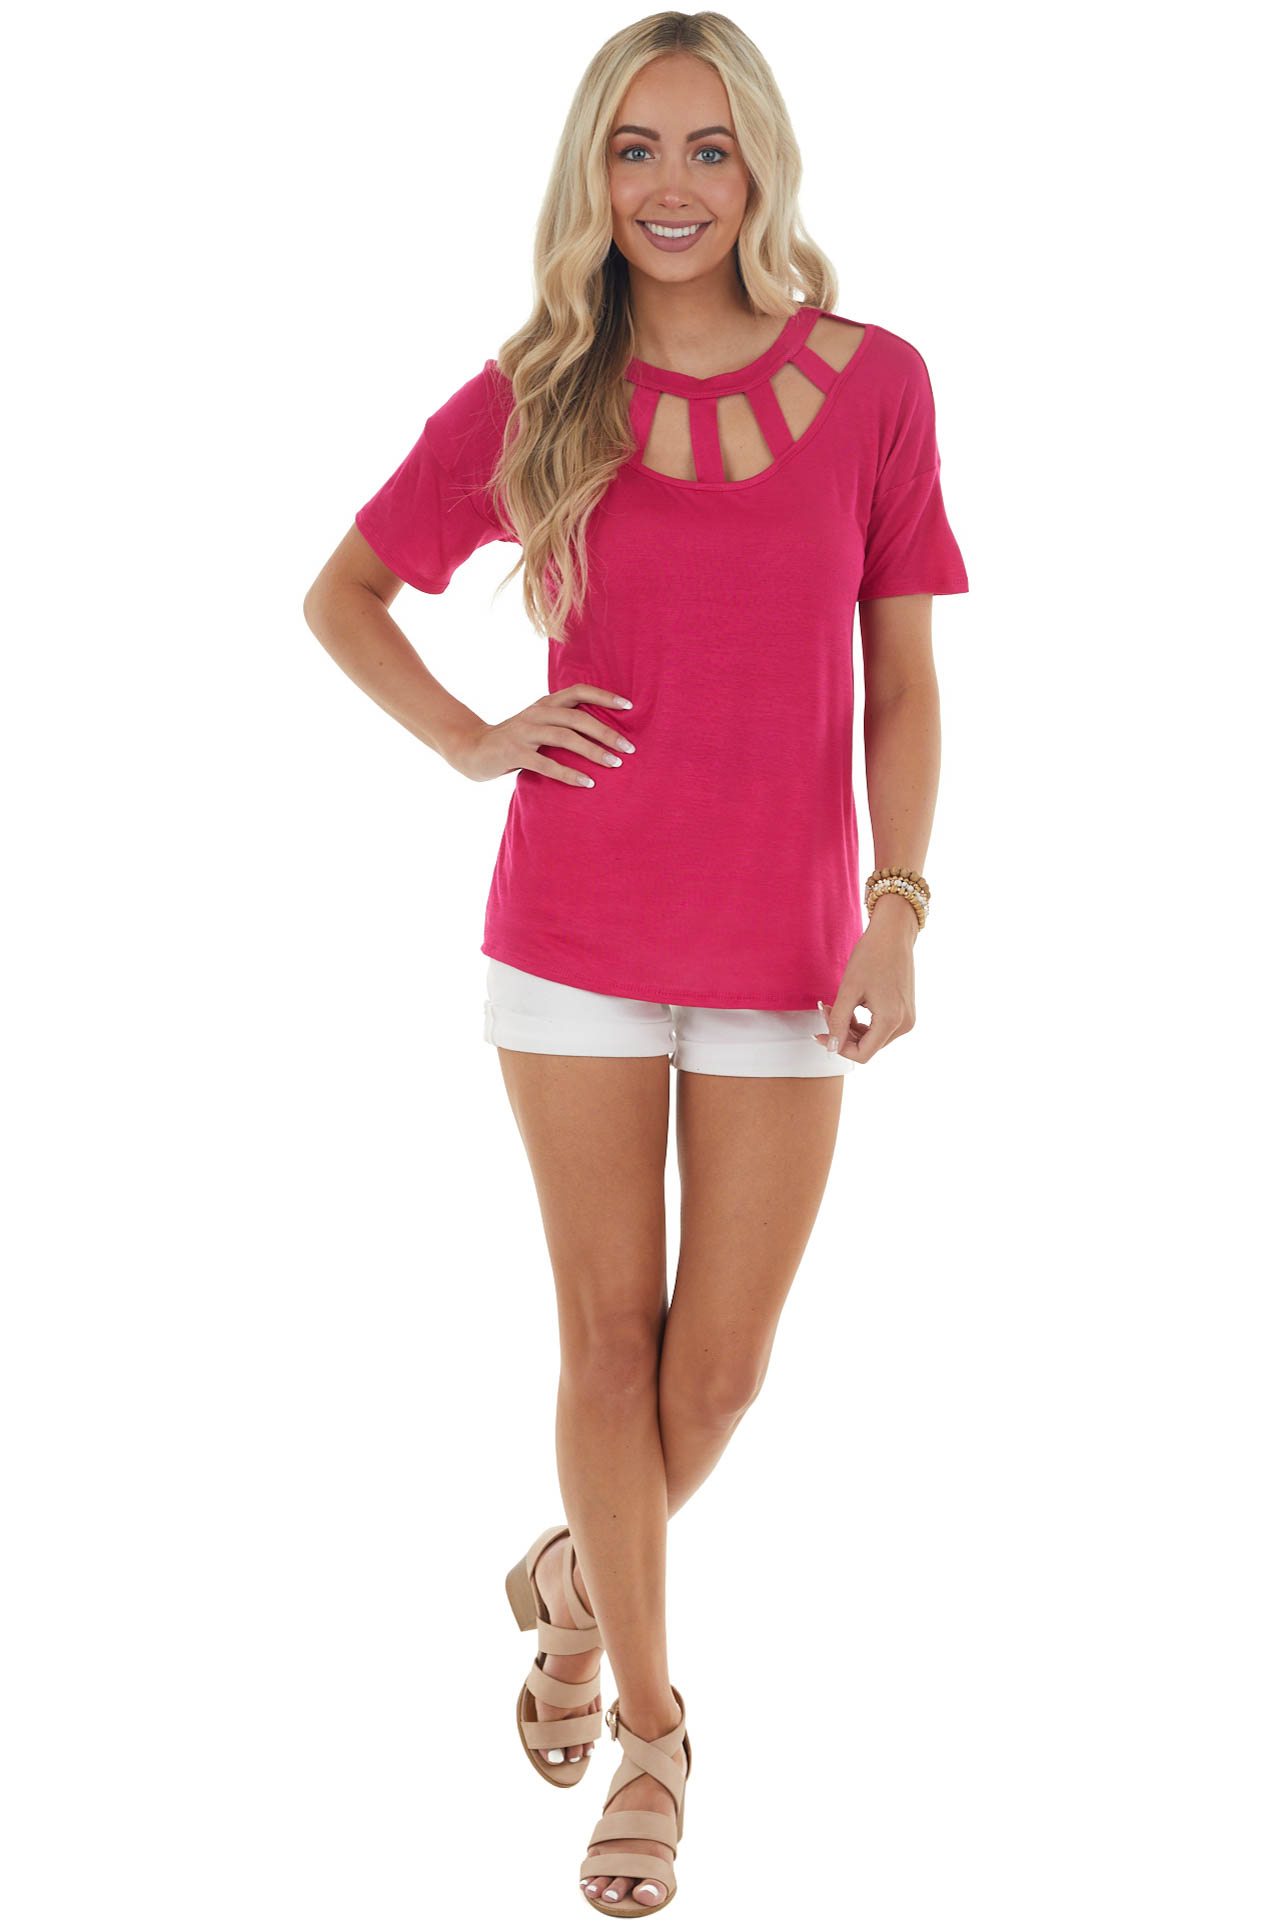 Magenta Short Sleeve Knit Top with Caged Neckline